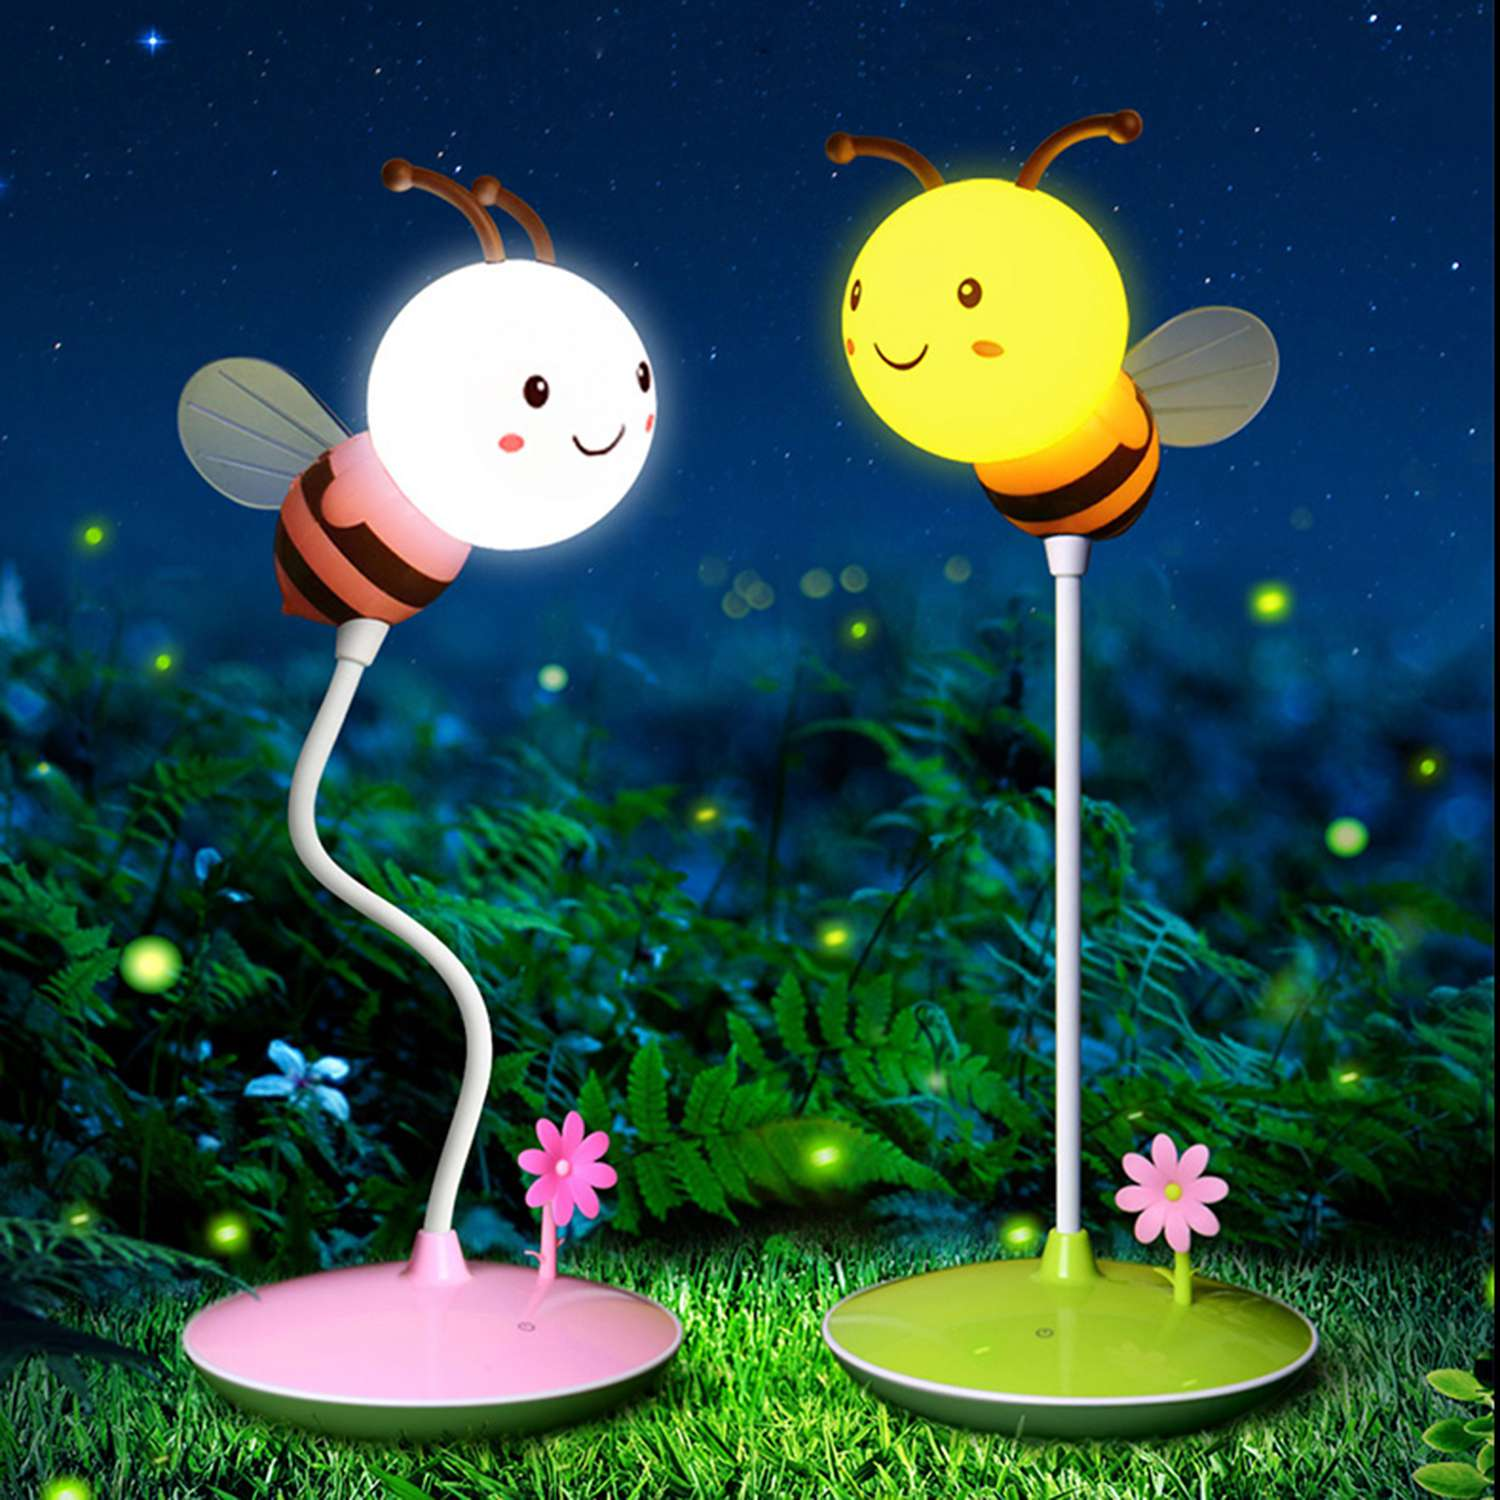 LED Bee Night Light 5VUSB Charge Touching Table Lamp Dimmable Baby Feeding Sleeping Bedroom Night Light Home Decor Creative Gift